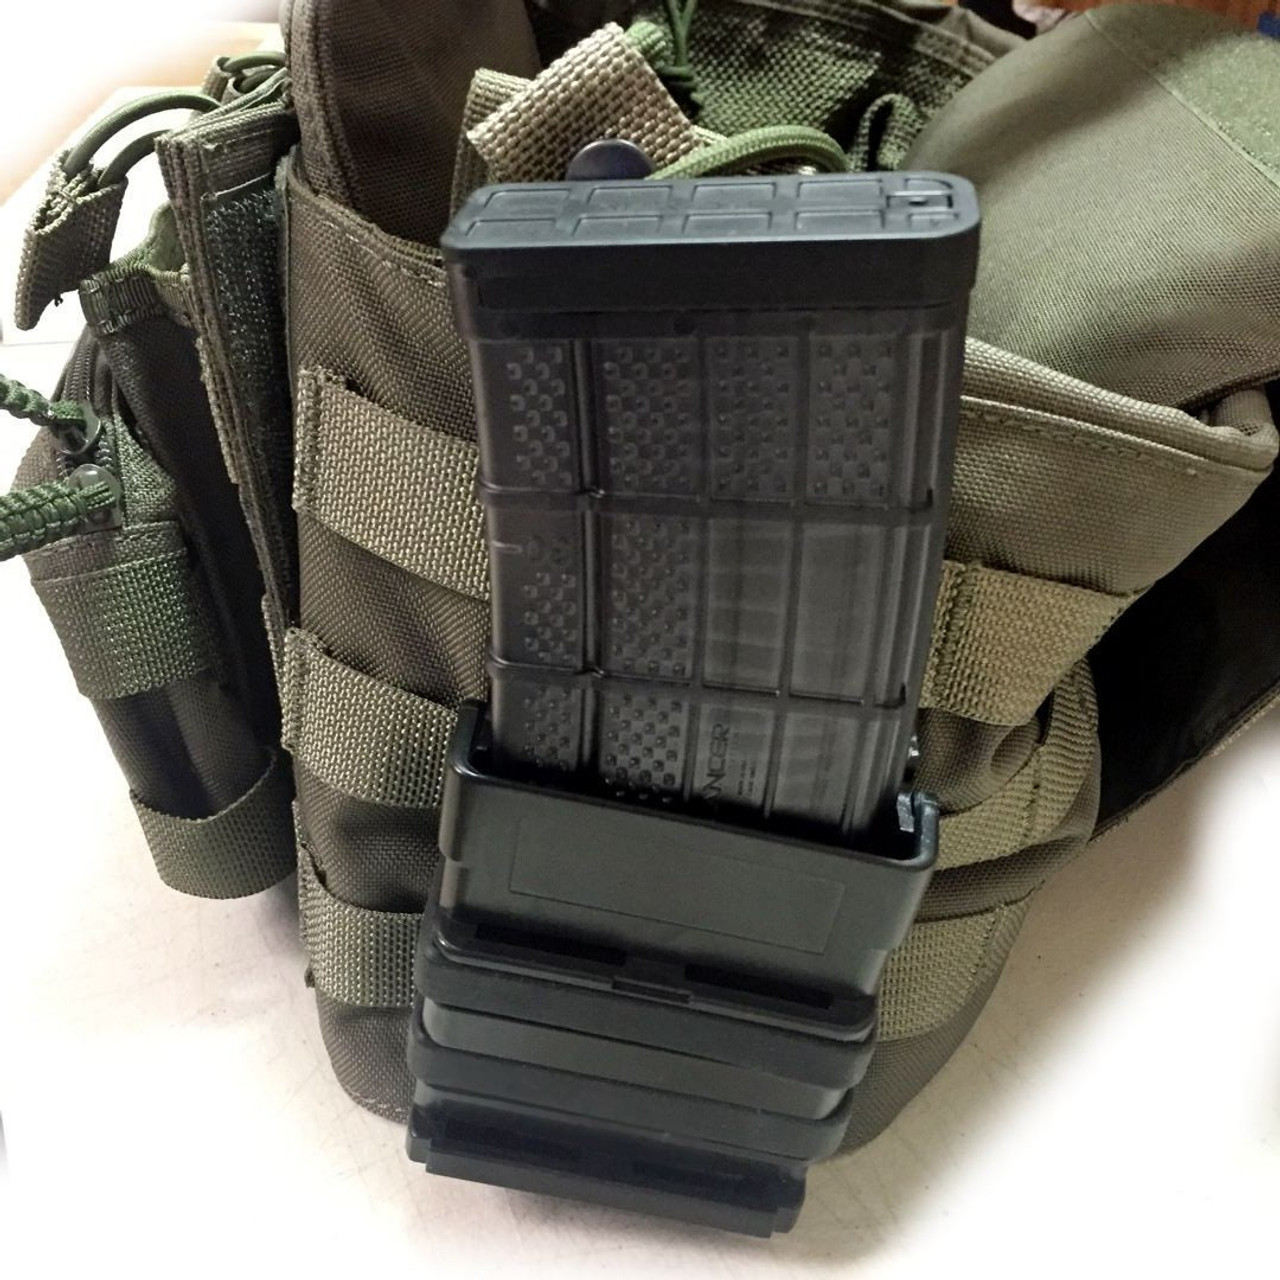 7.62/.308 Fast Fang HD Gen III Single Magazine Mag Holster/Pouch - Molle Version